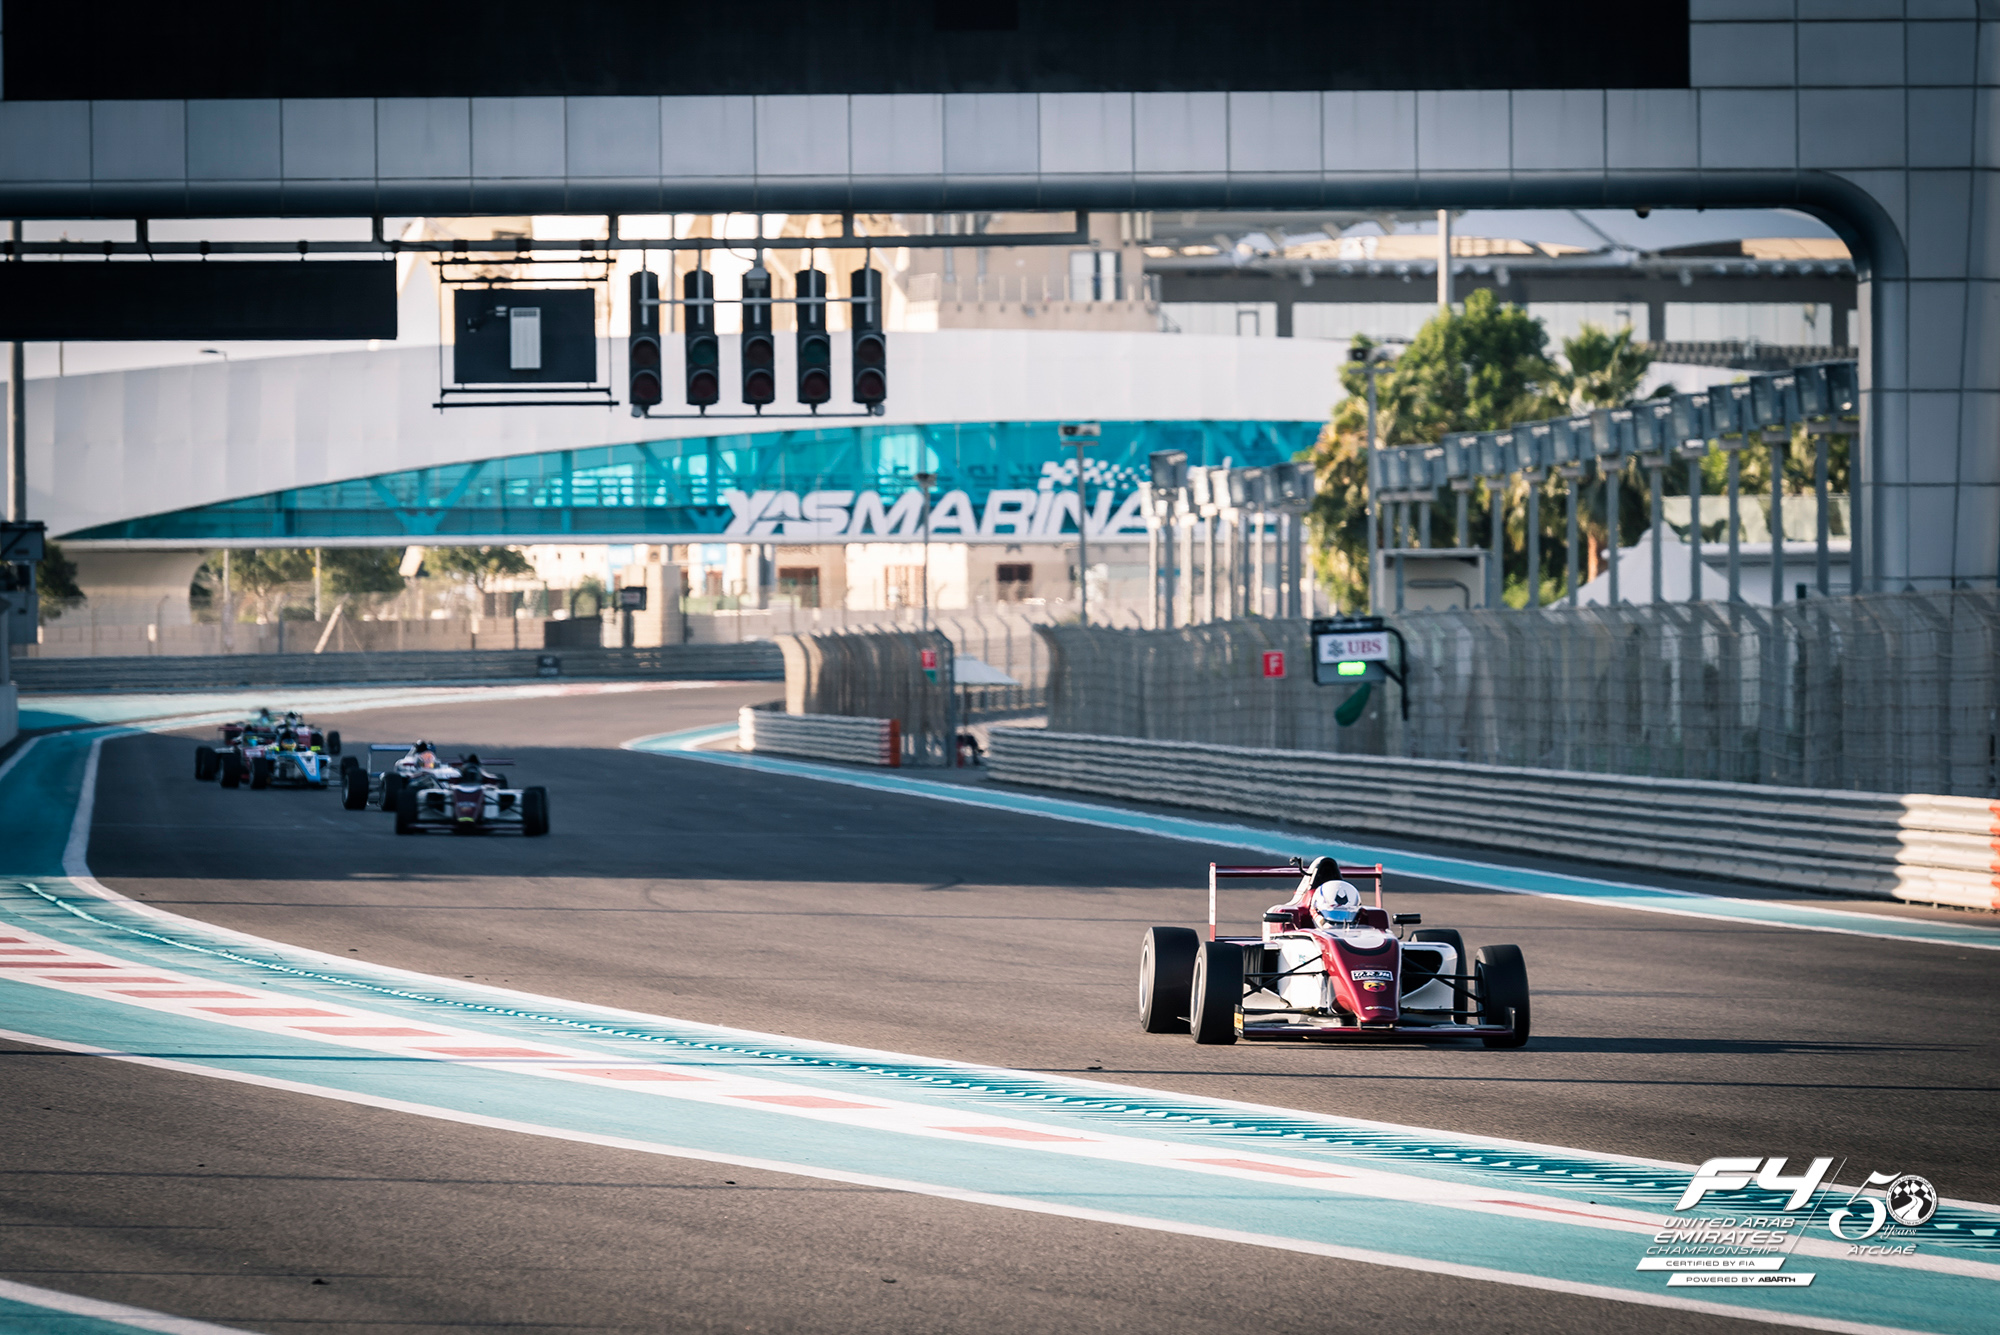 2016 12 18   F4 Second Roud   Abu Dhabi 3 Of 39